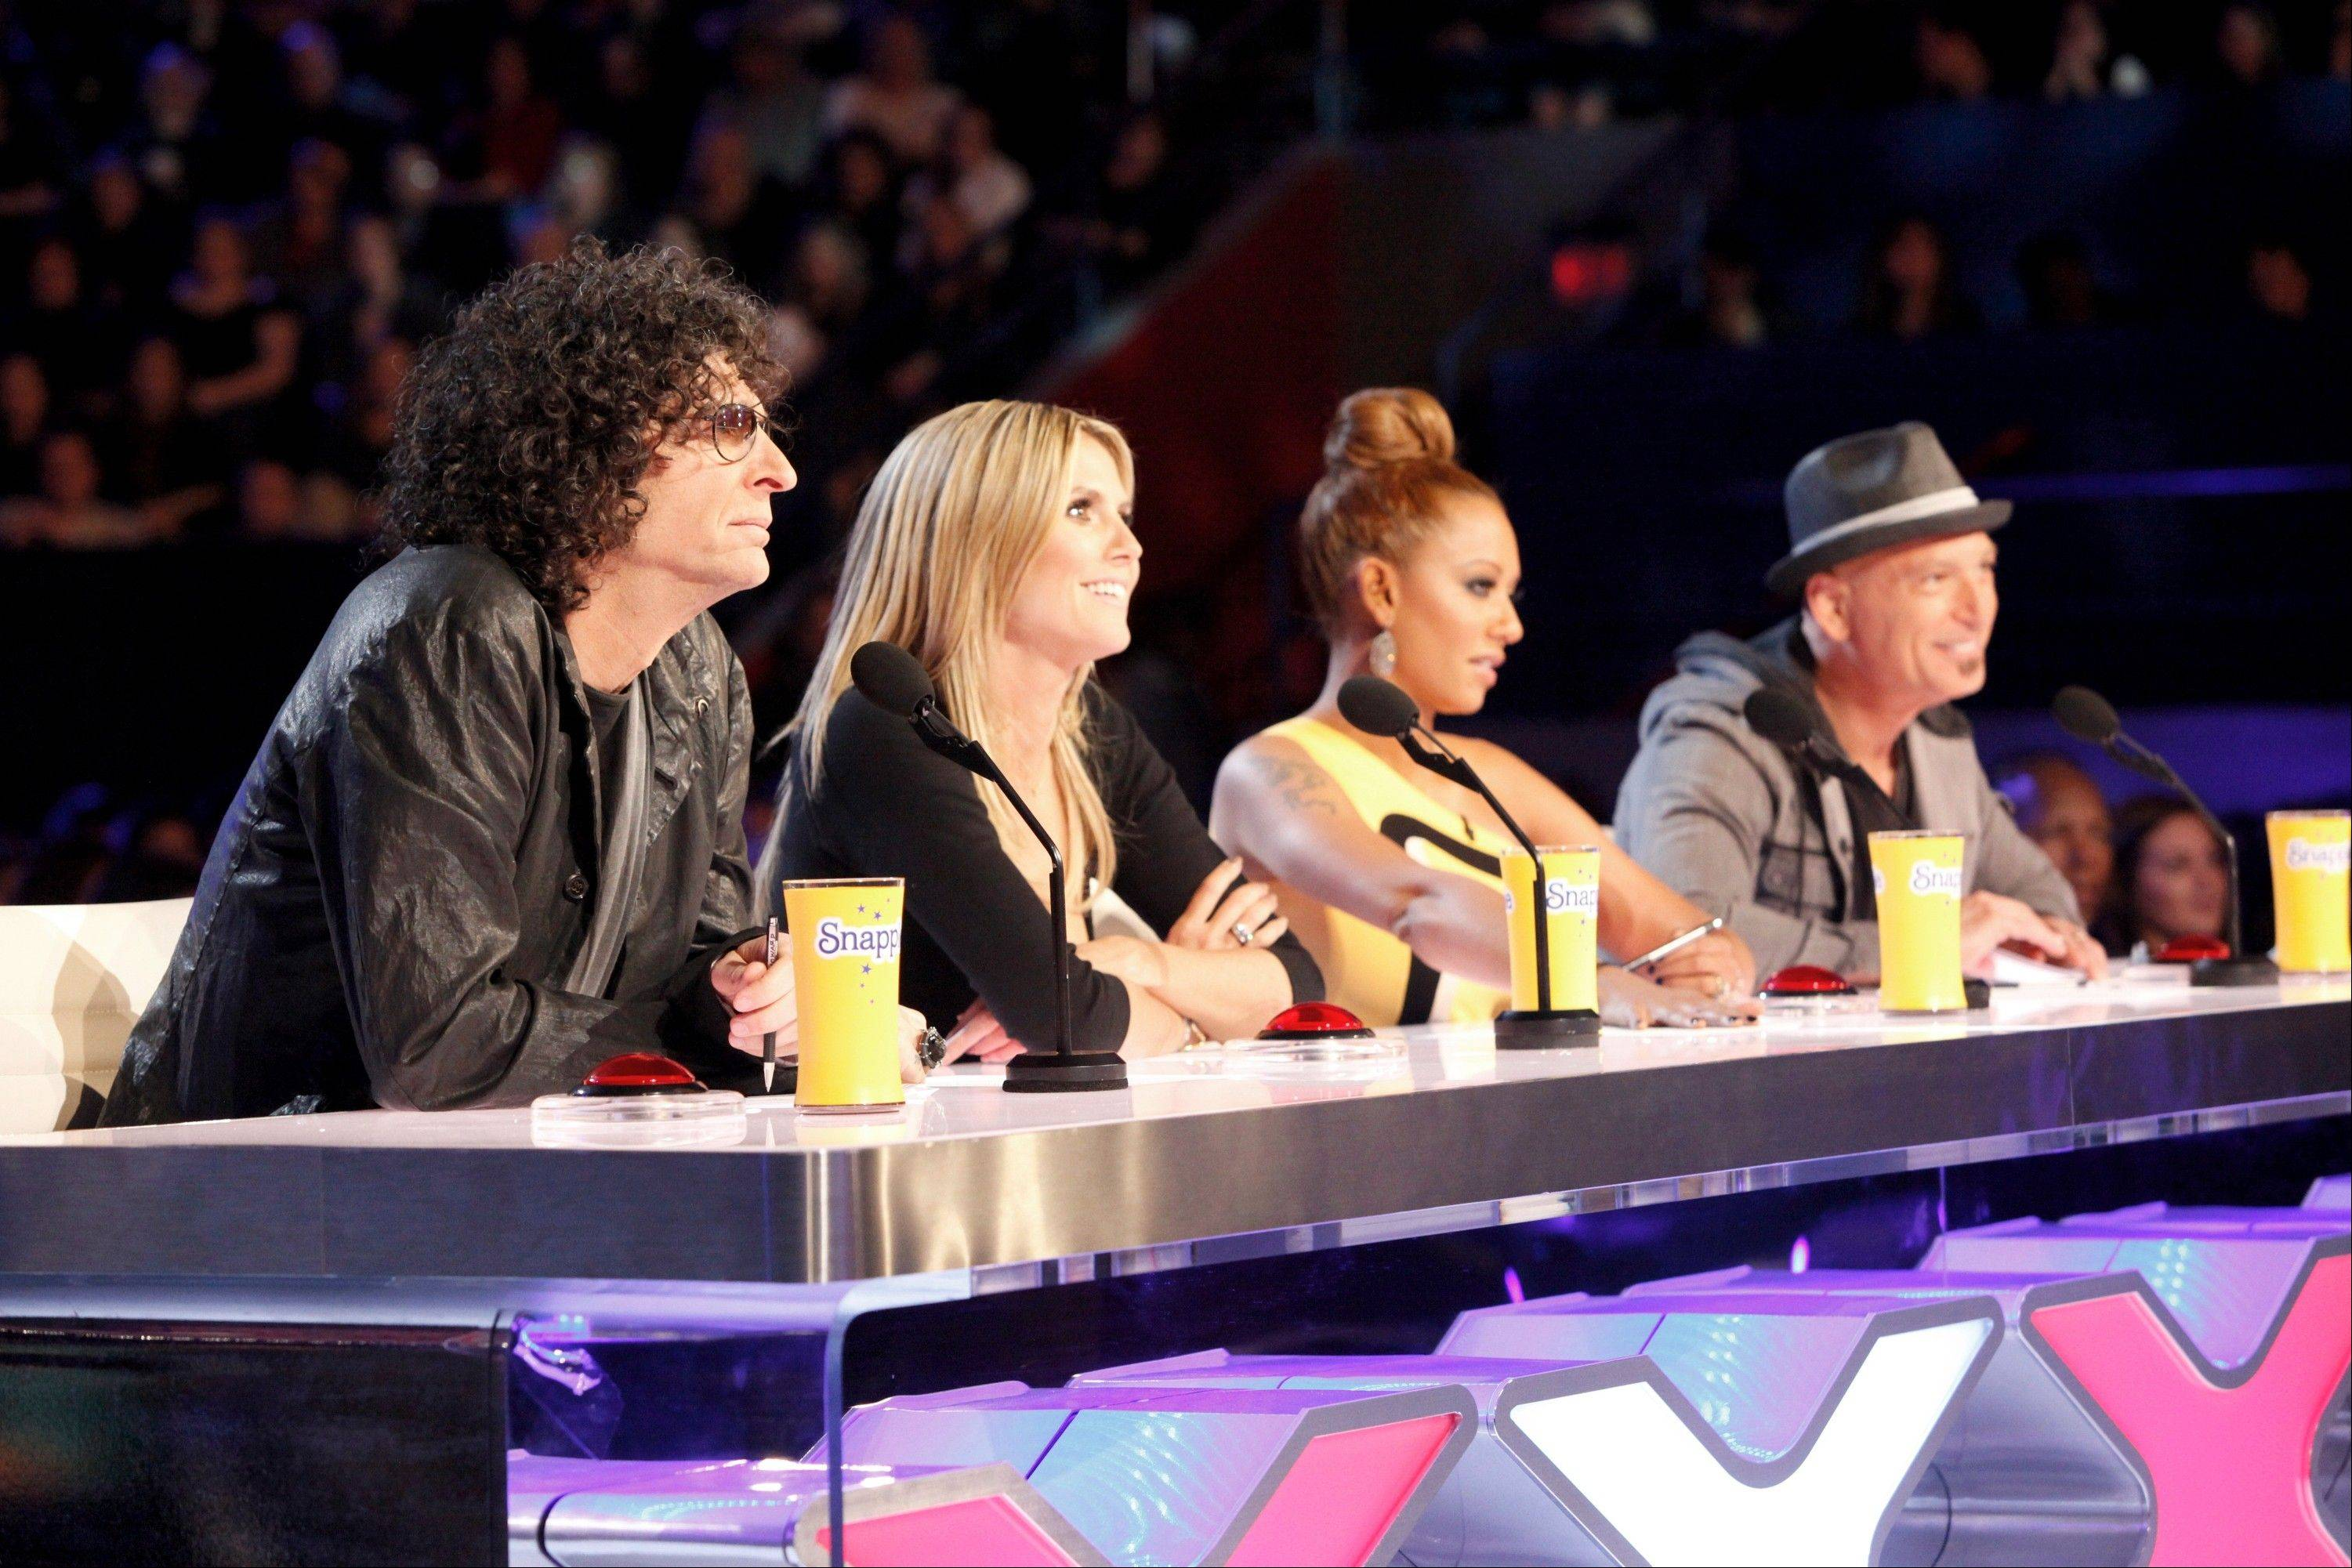 """America's Got Talent"" judges will be filming auditions in Rosemont in May. Returning judges Howard Stern, left, and Howie Mandel will be joined by Heidi Klum and Mel B."